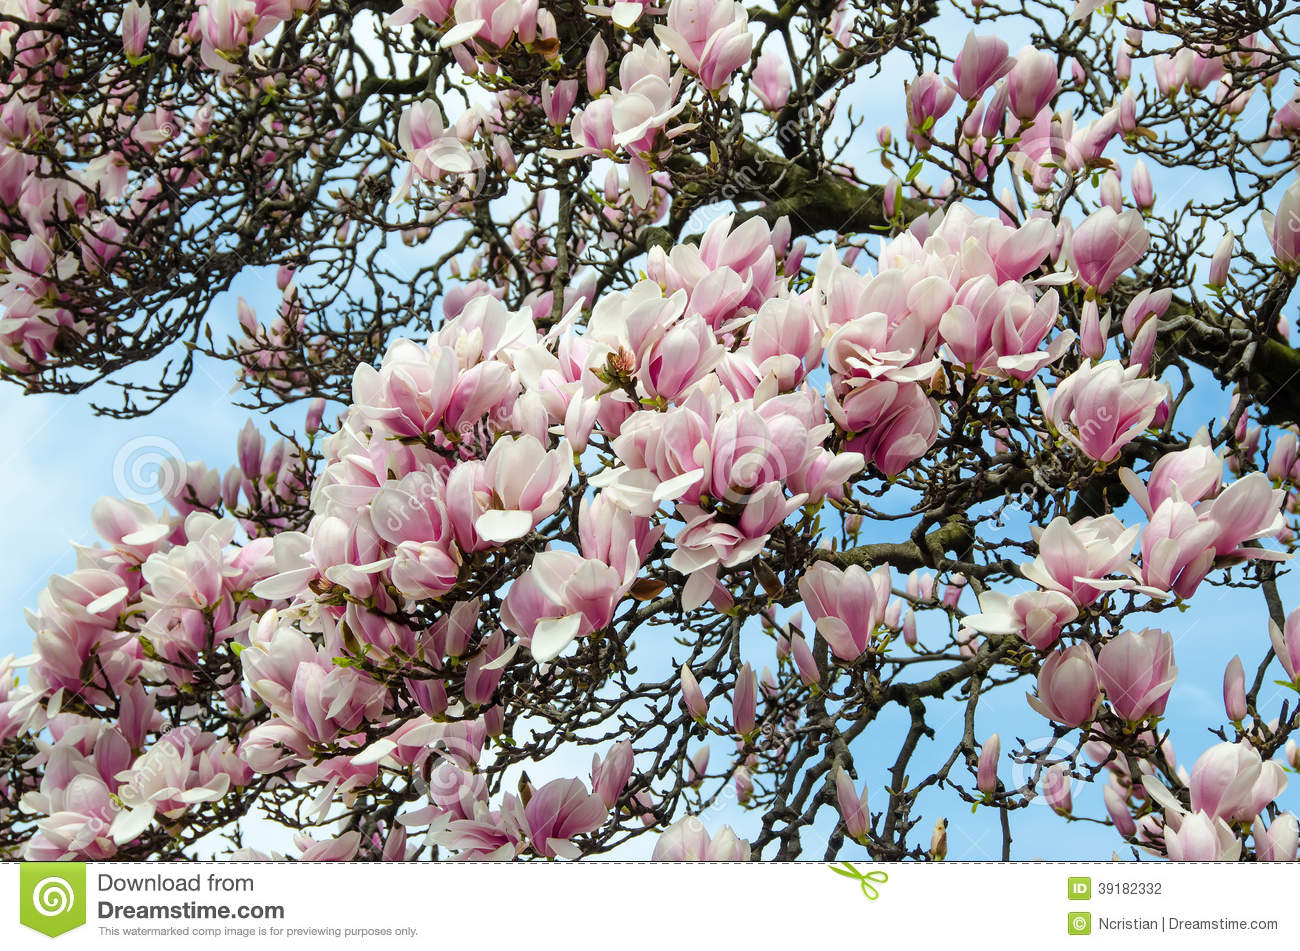 Luxury Images Of Trees With White Flowers Top Collection Of